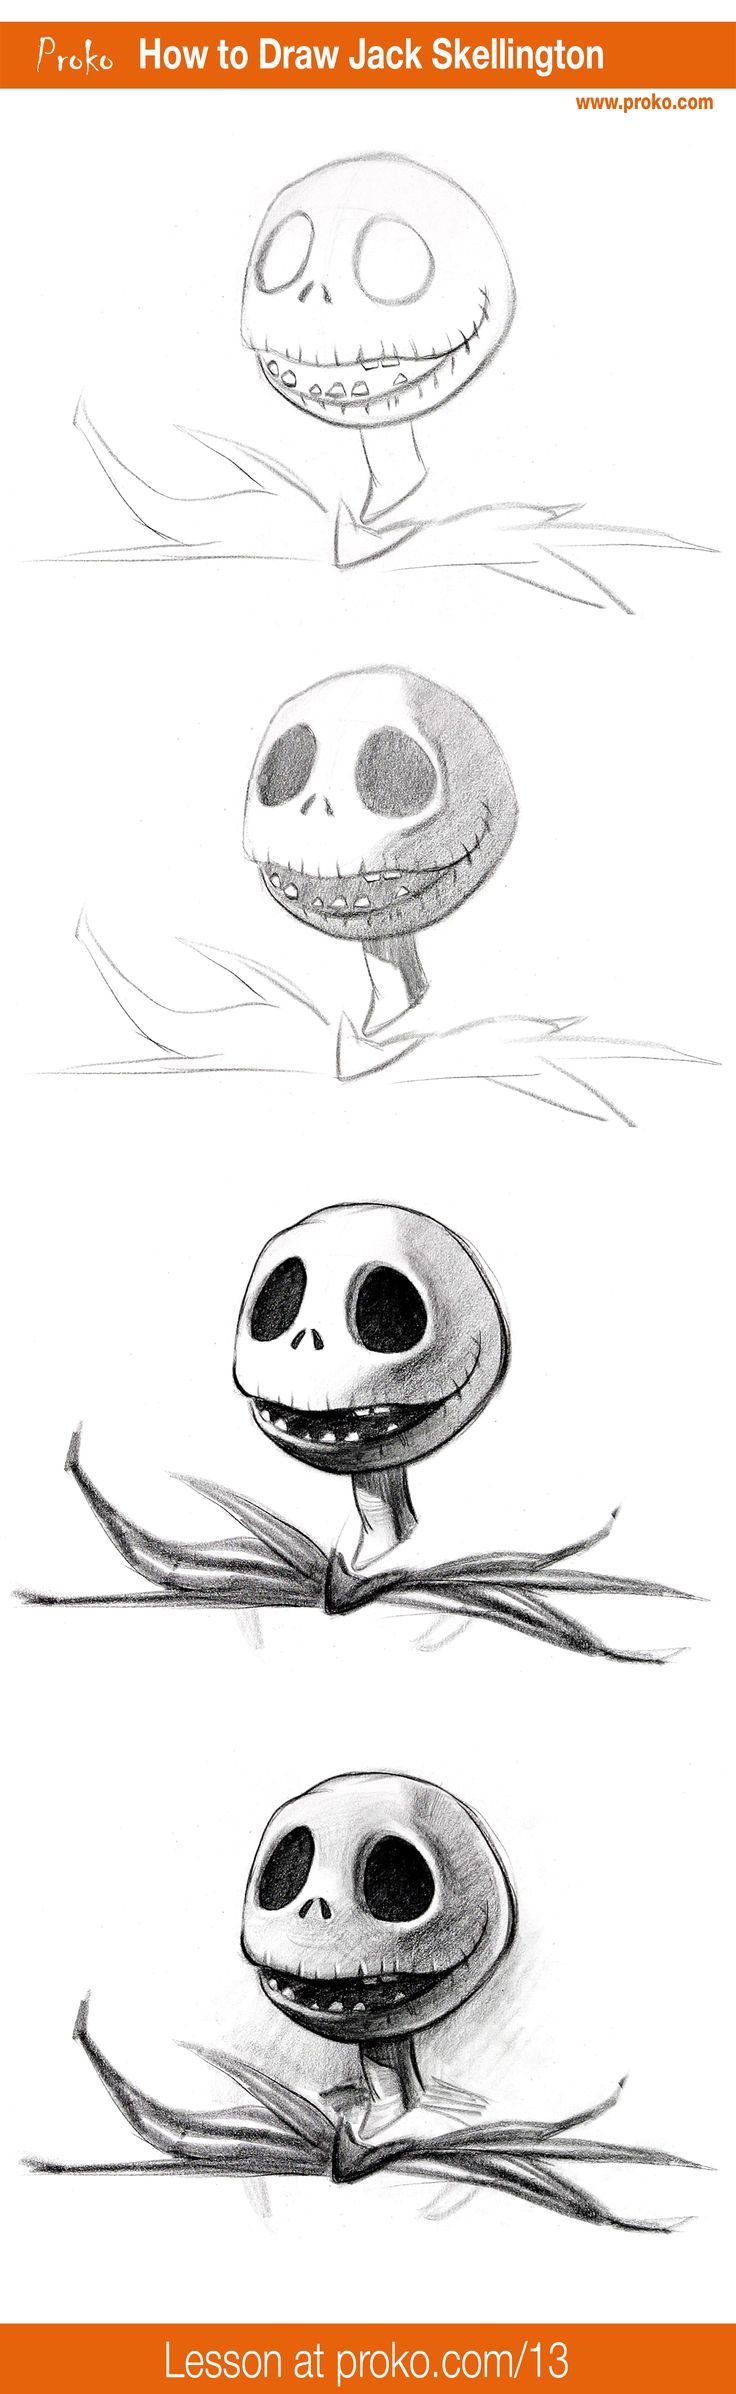 Diy jack skellington s body nightmare before christmas youtube - Get In The Halloween Spirit As I Show You How To Draw Jack Skellington From